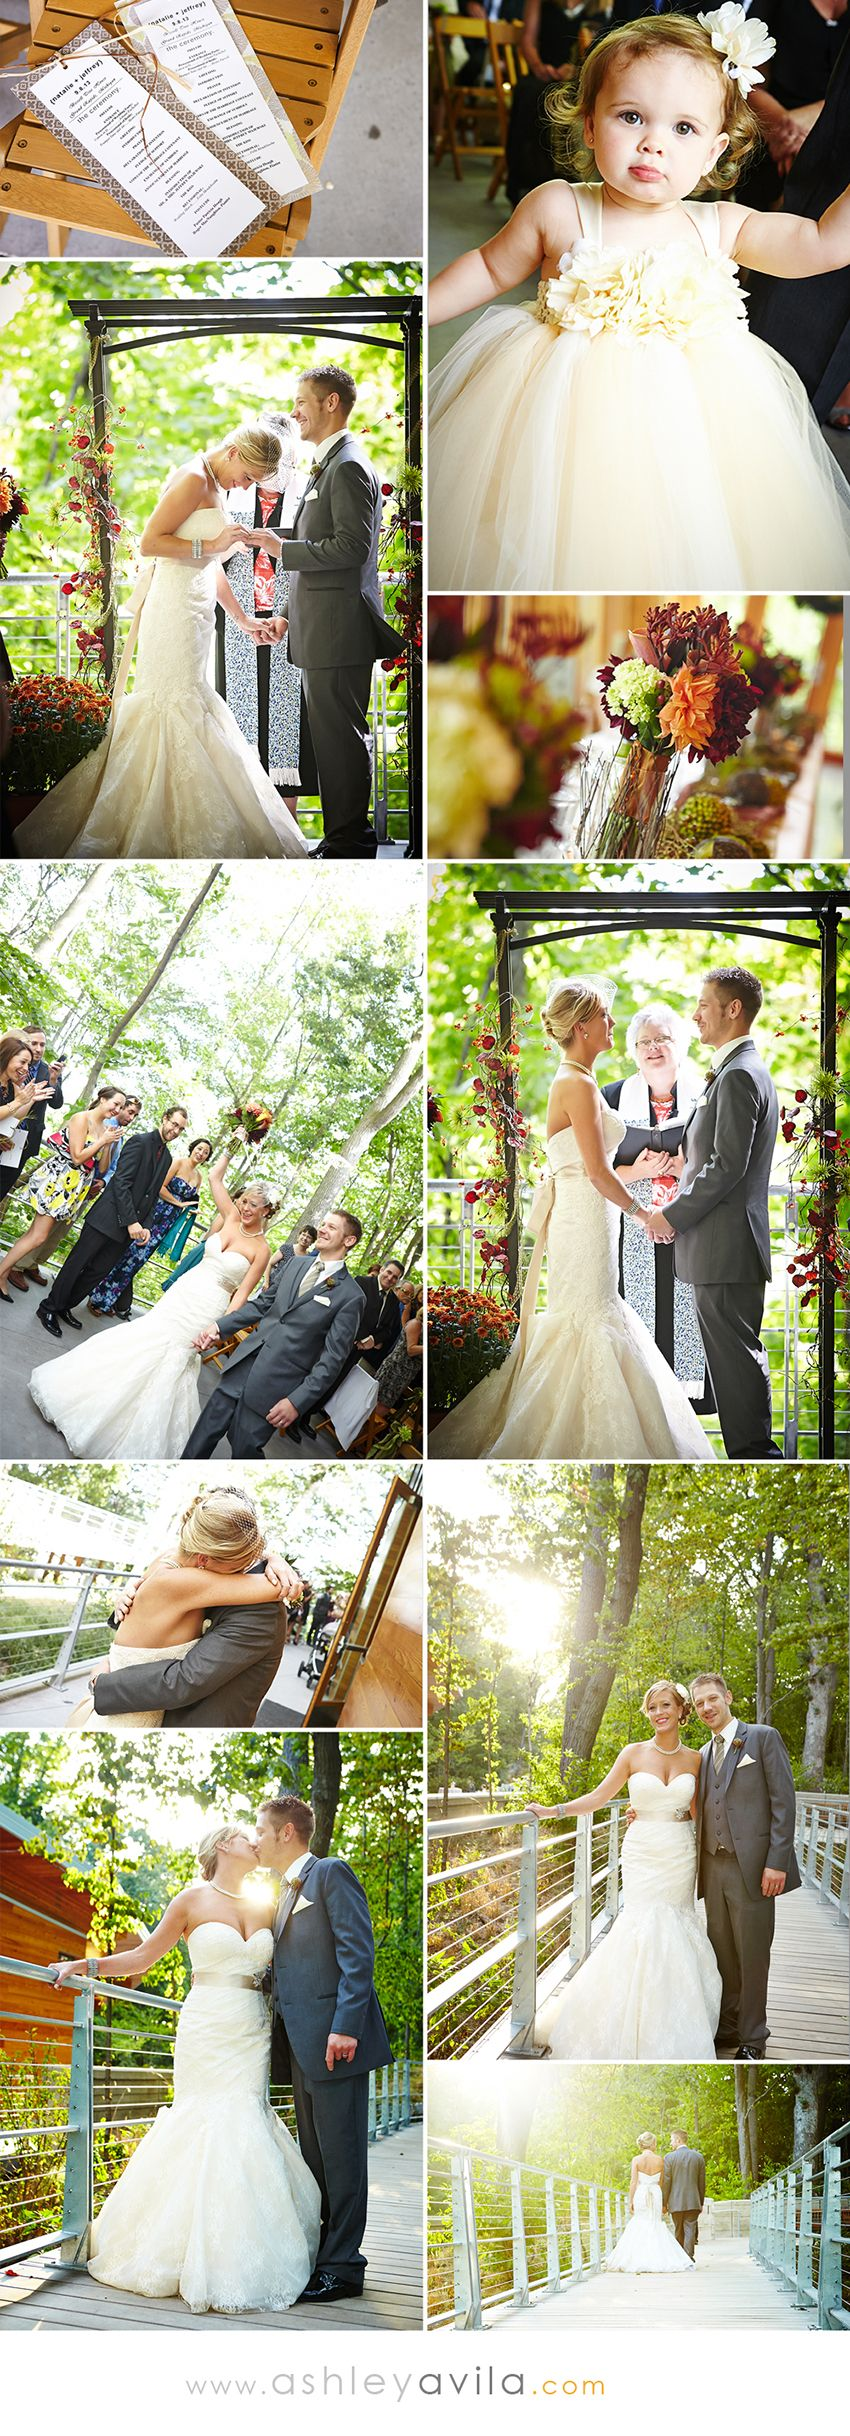 Wedding at Bissell Treehouse in the John Ball Zoo located